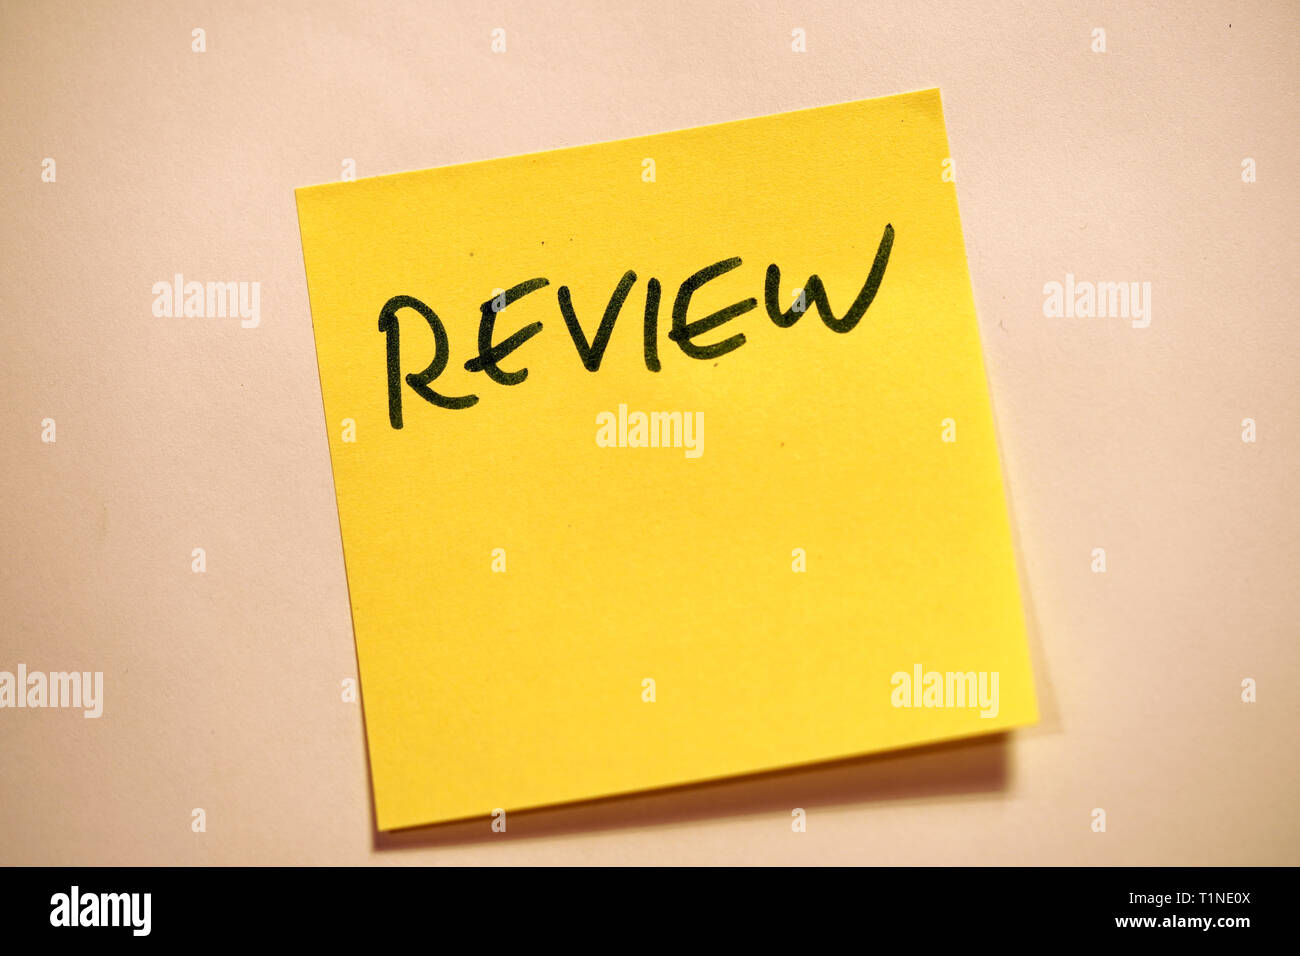 Yellow Sticky Note Scrum Agile Review - Stock Image